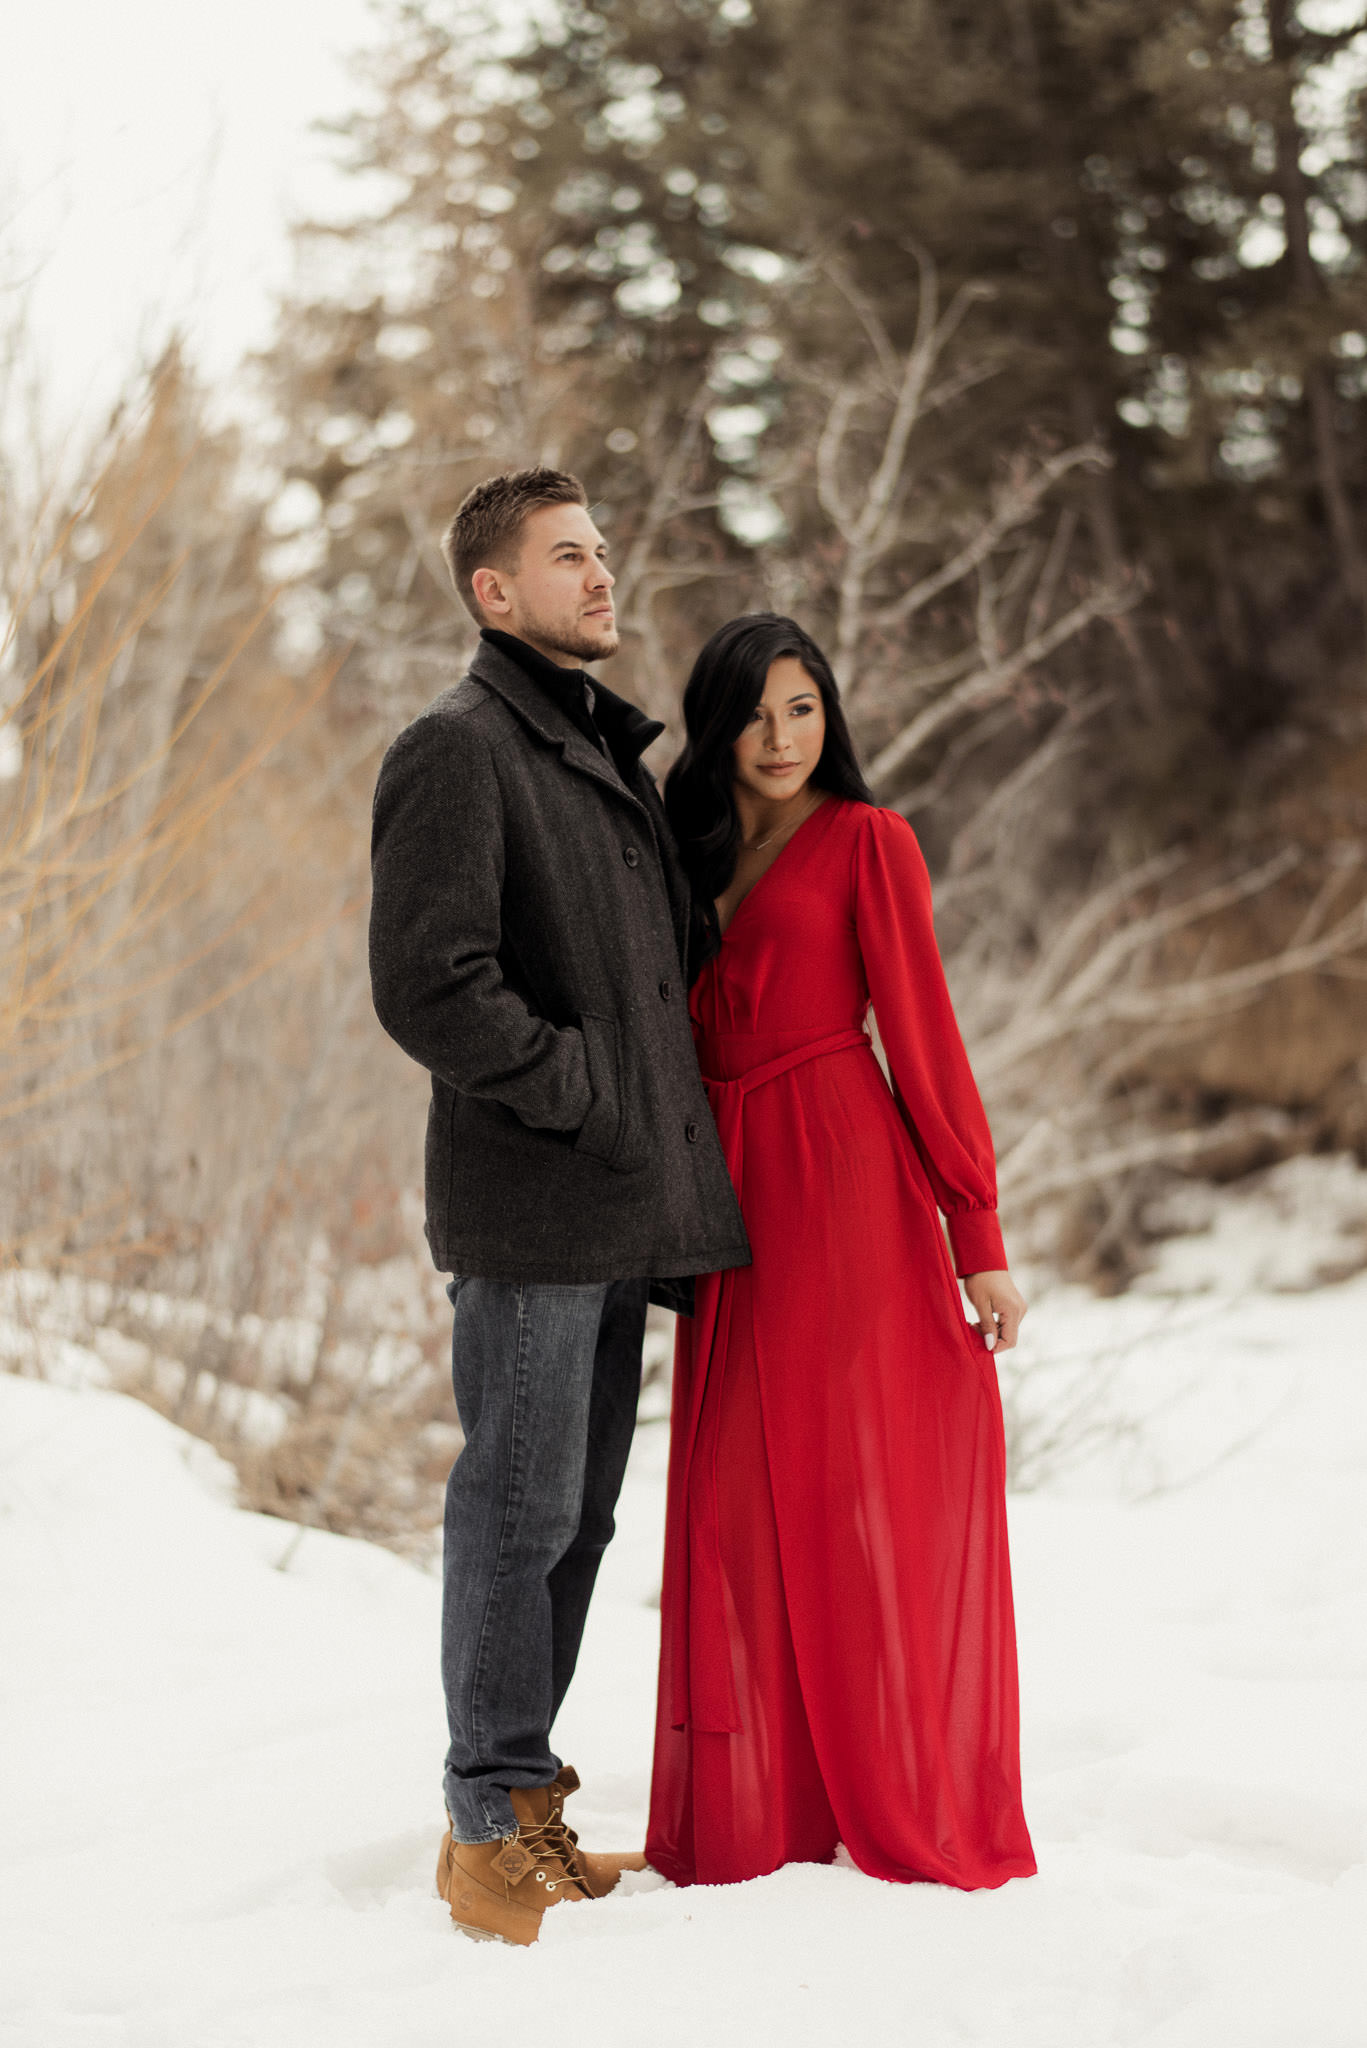 sandra-ryan-colorado-winter-snow-engagement-couples-valentines-red-houston-photographer-sm-8.jpg